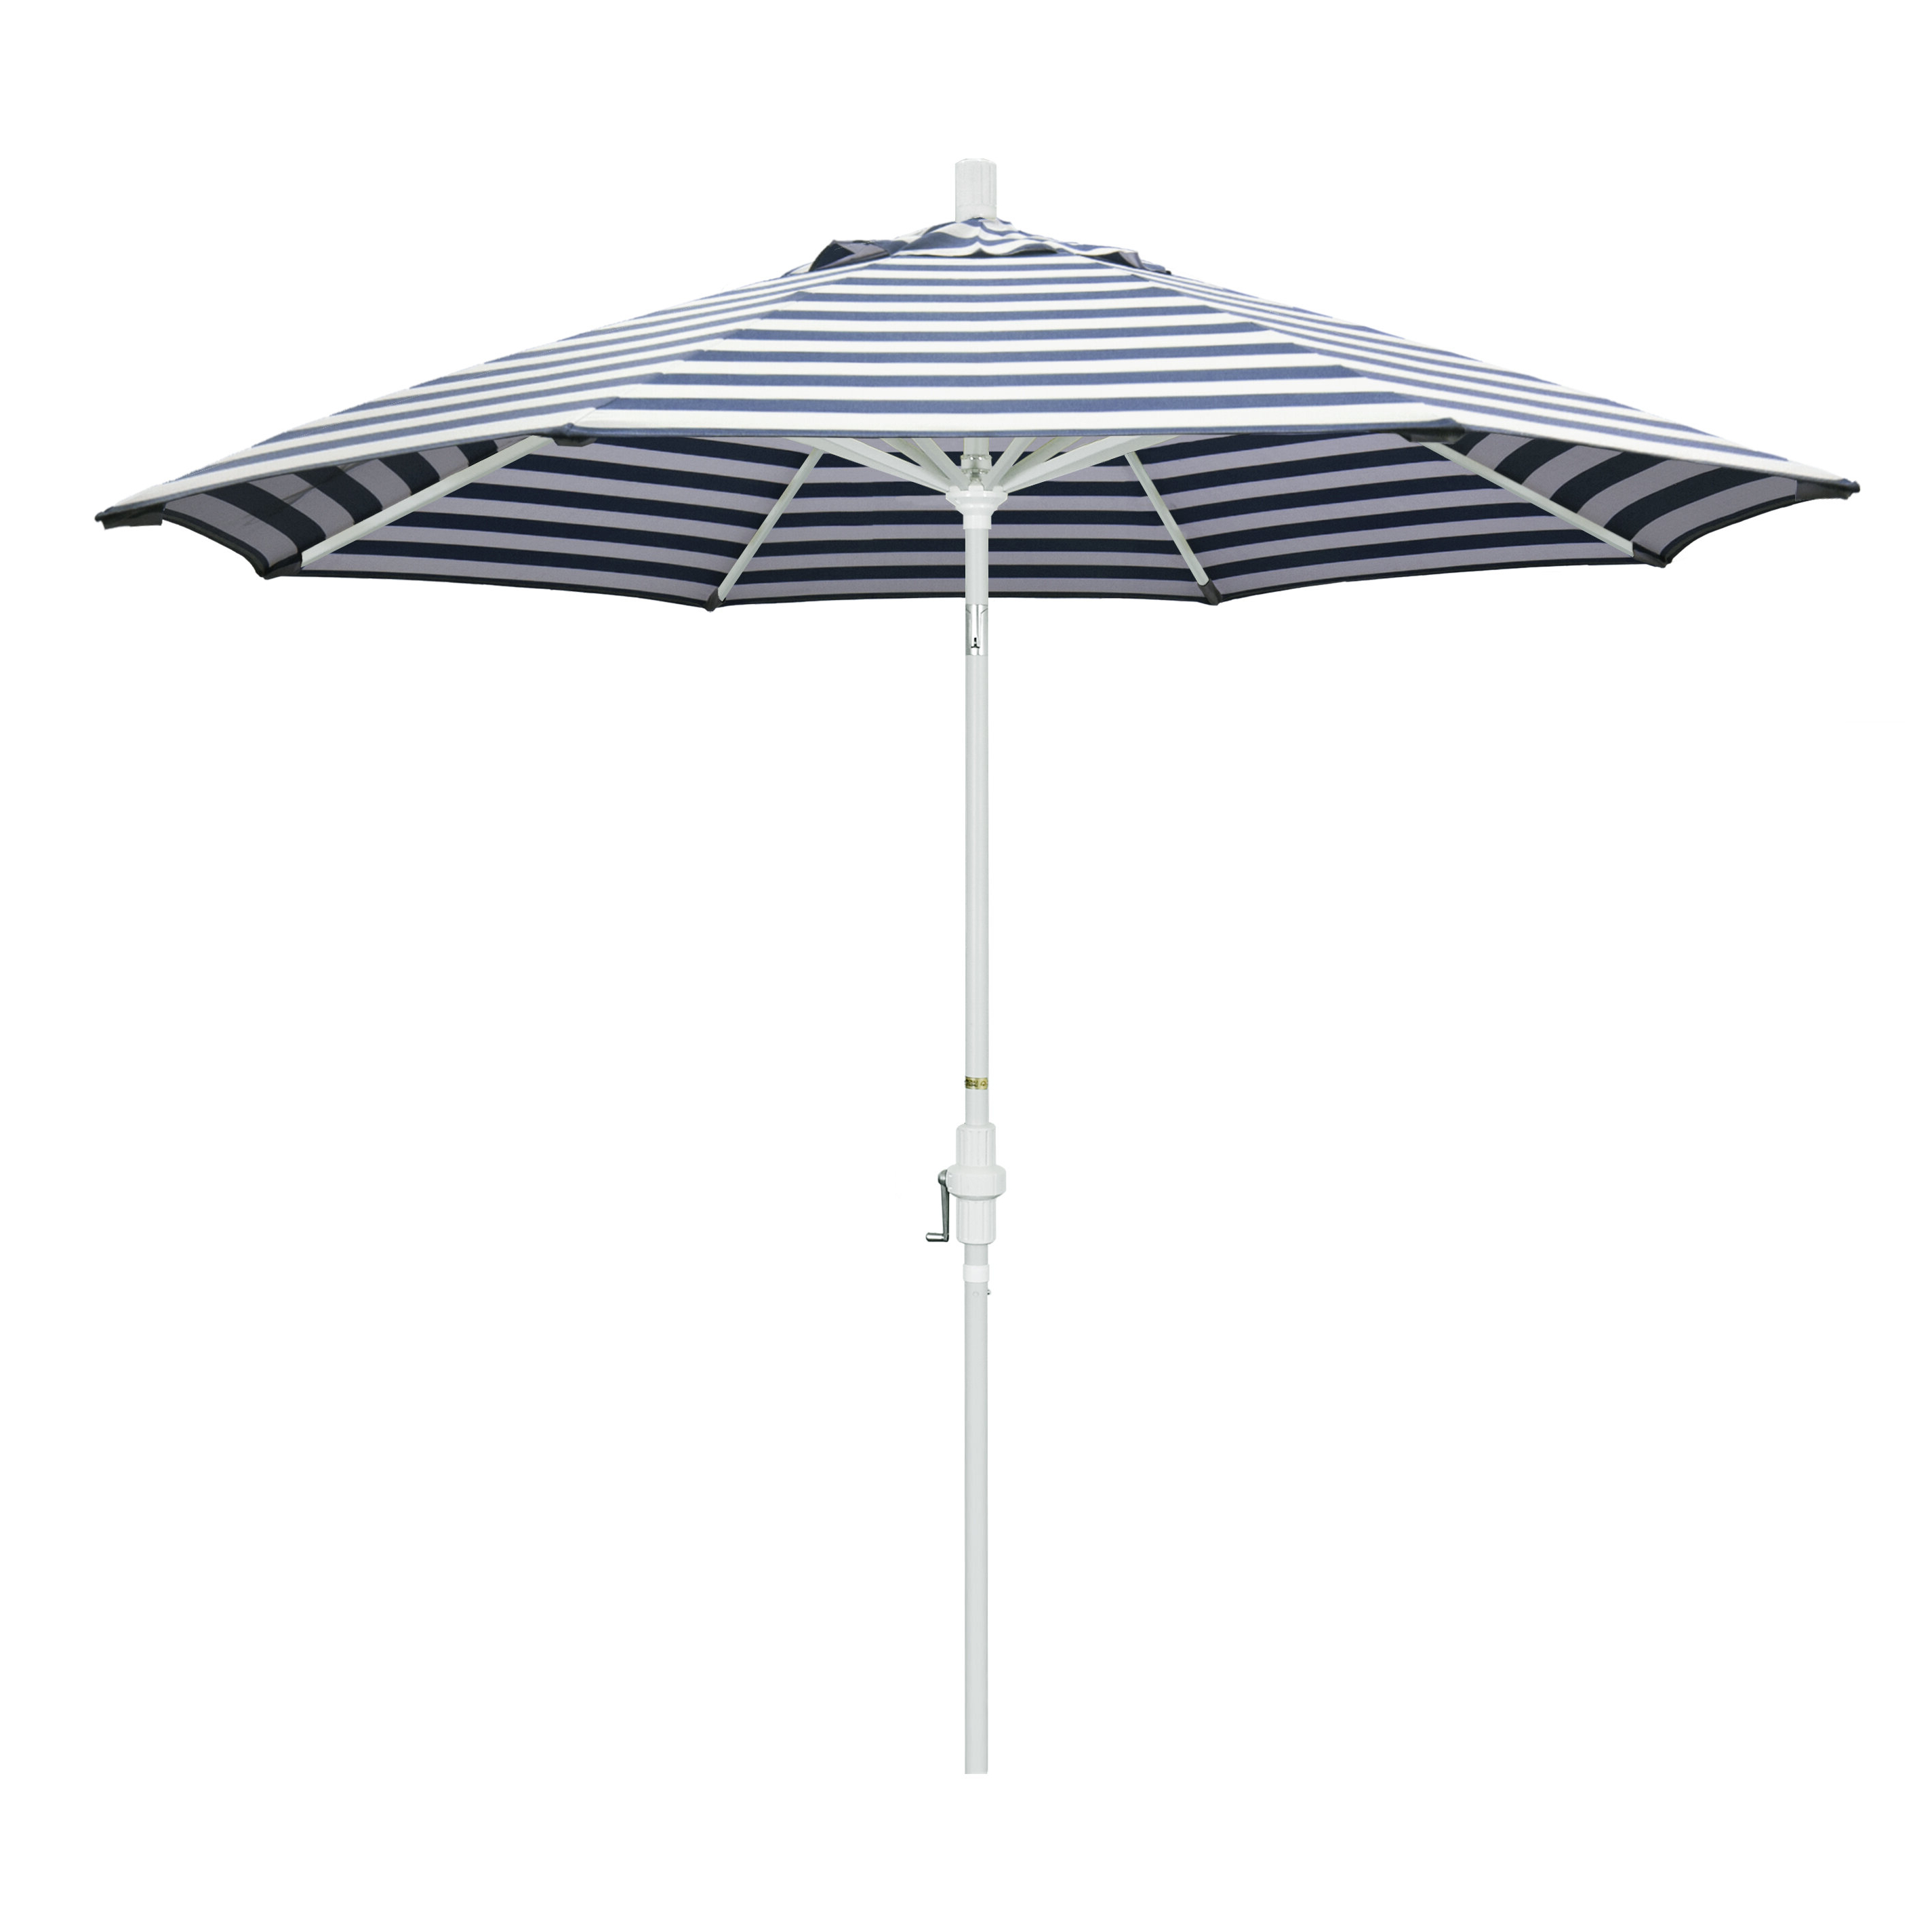 9' Market Umbrella Regarding Most Recent Belles  Market Umbrellas (Gallery 4 of 20)